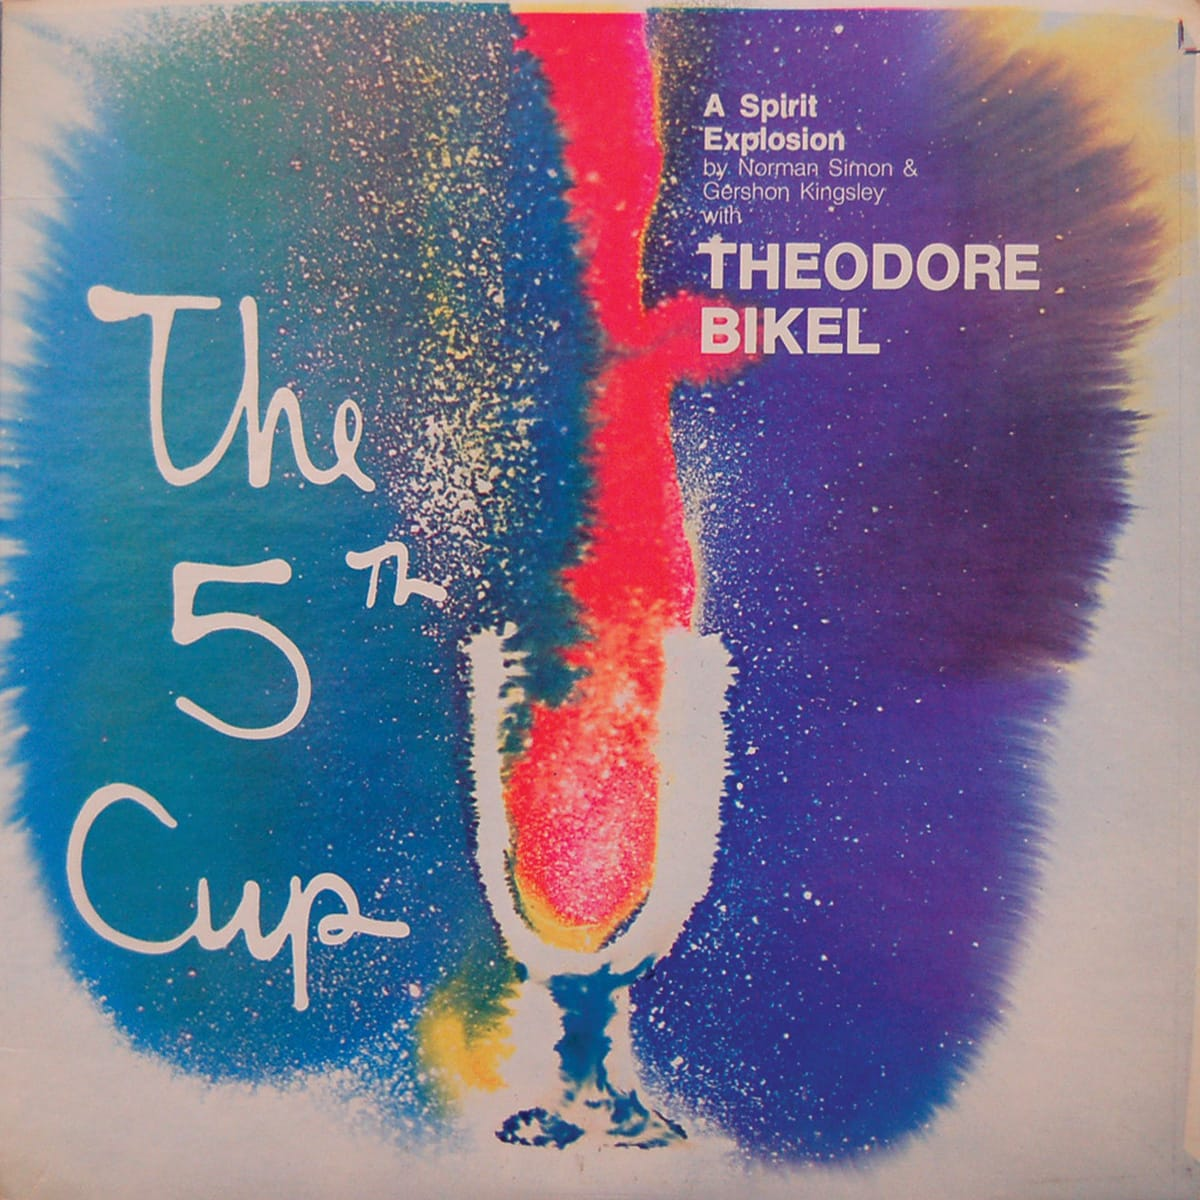 Theodore Bikel - The 5th Cup